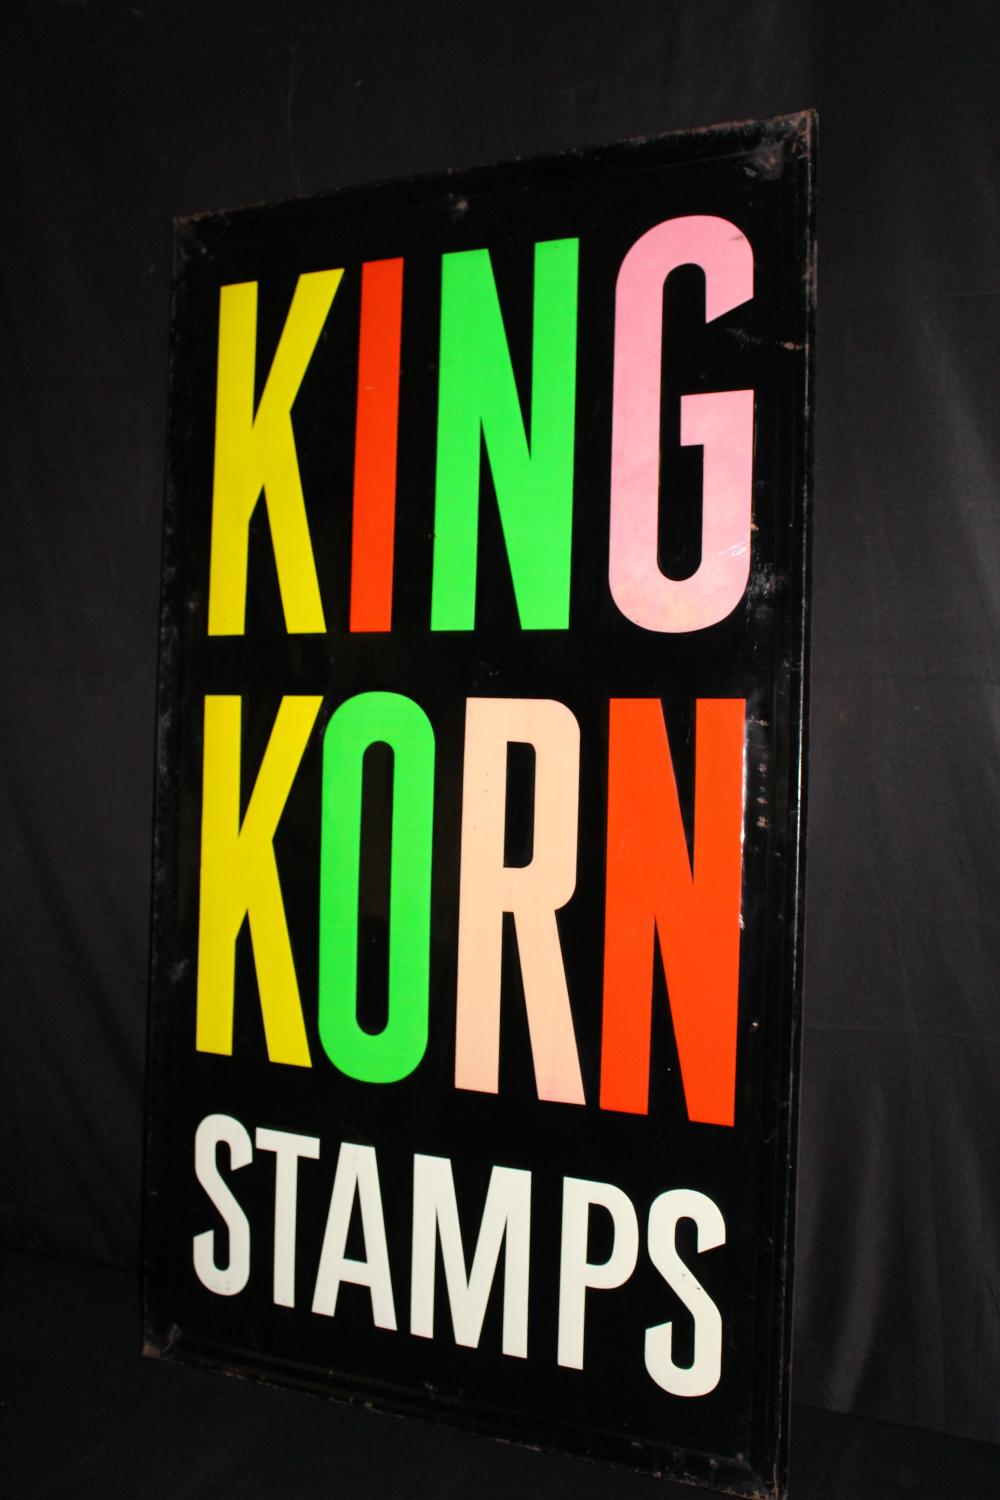 KING KORN STAMPS TIN SIGN FUNKY COLORS